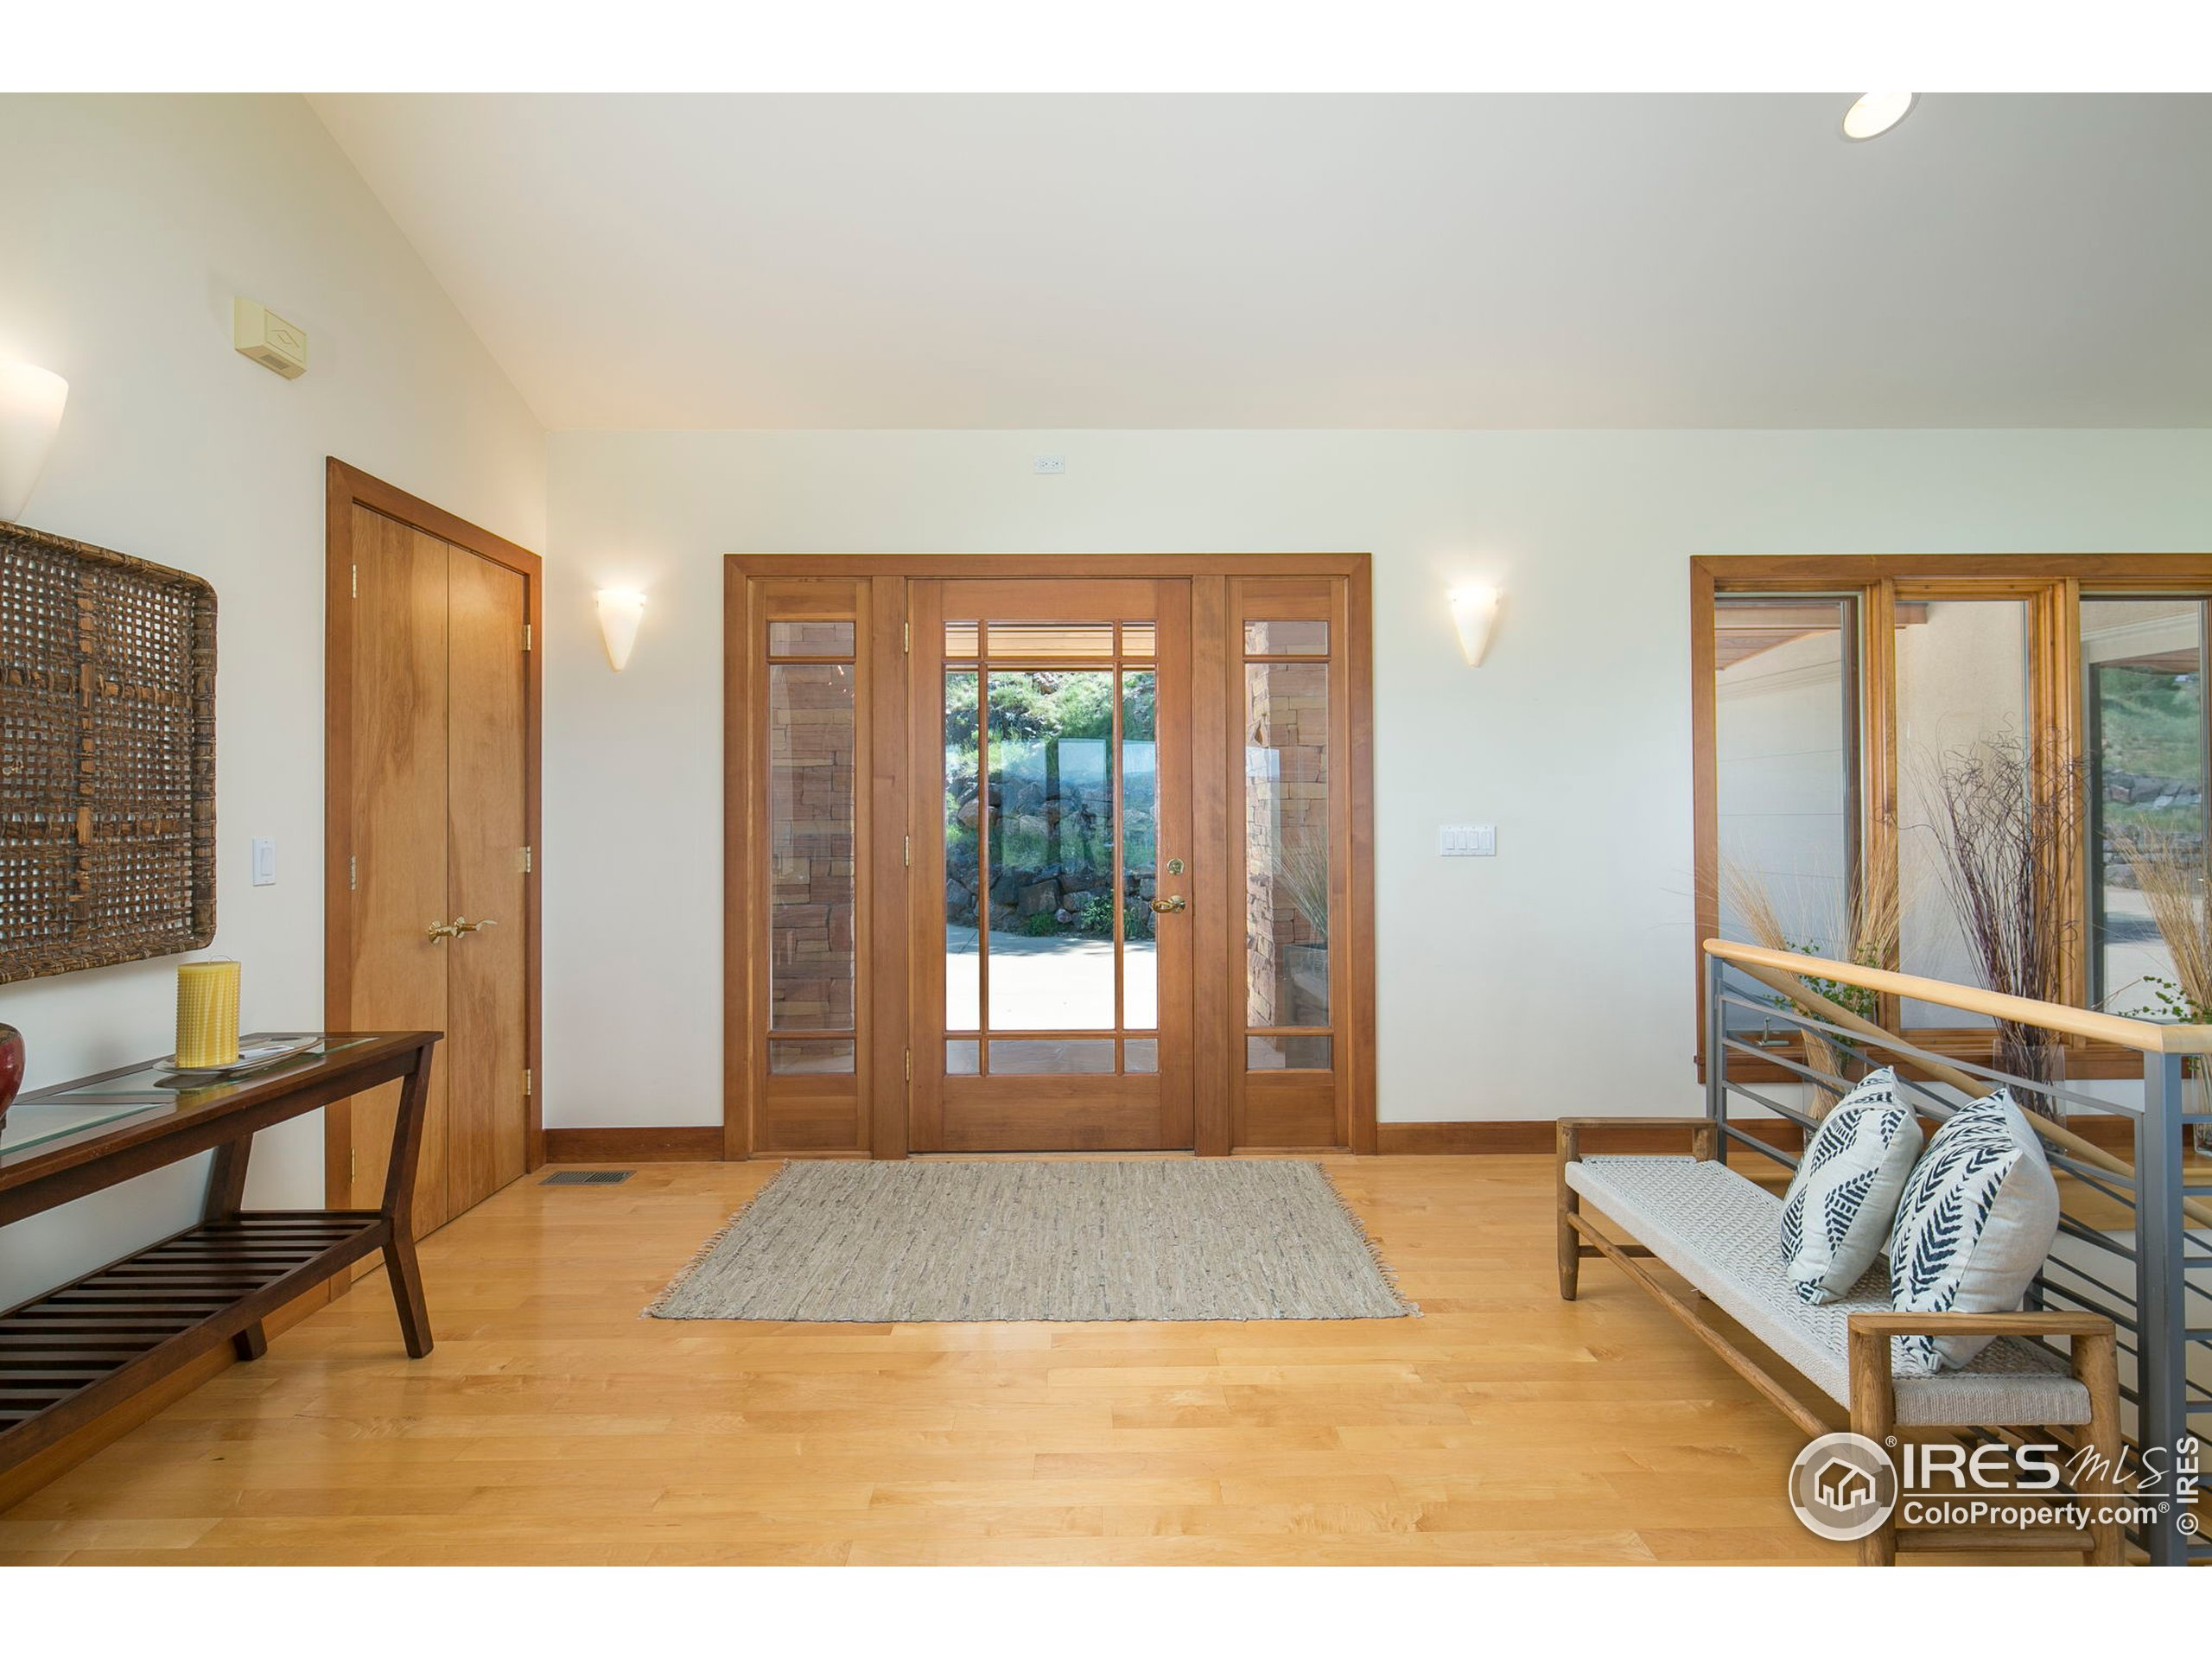 Spacious front entry to great guests